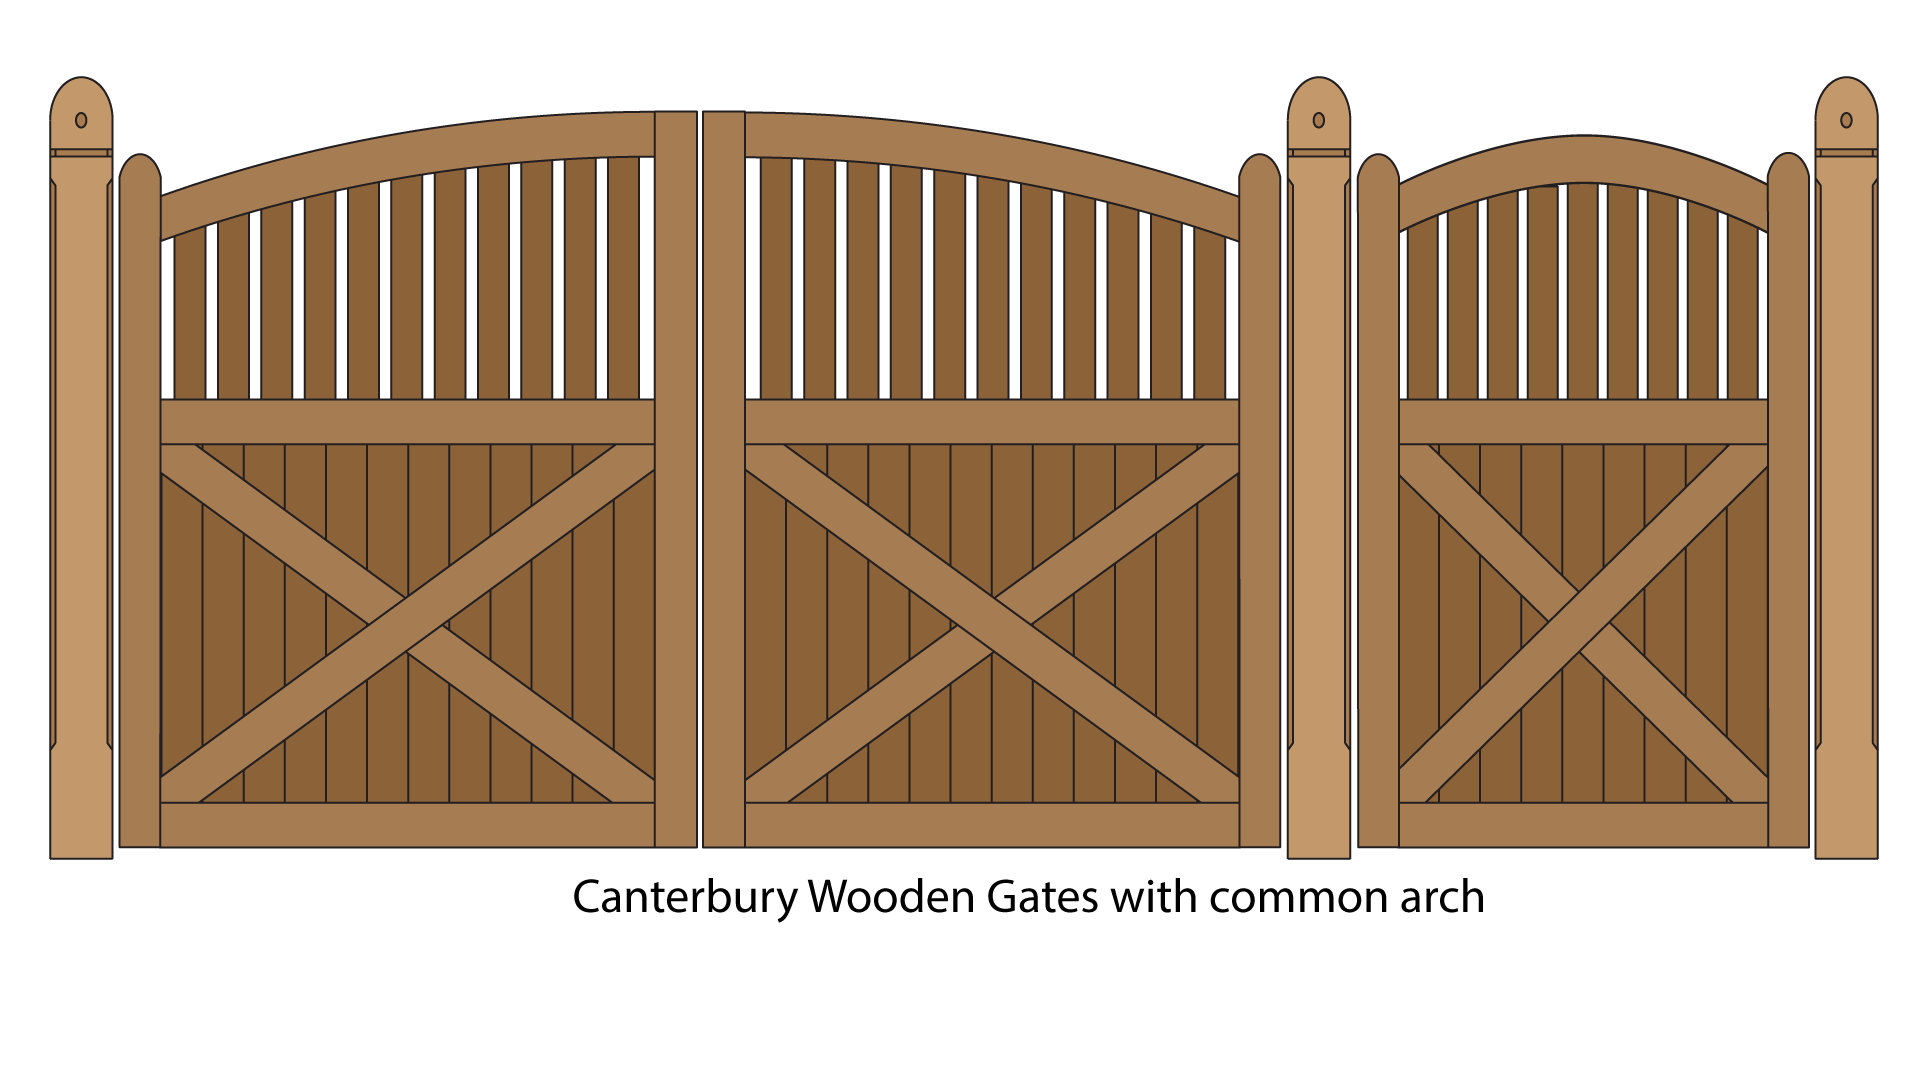 Canterbury woodene gates with common arch